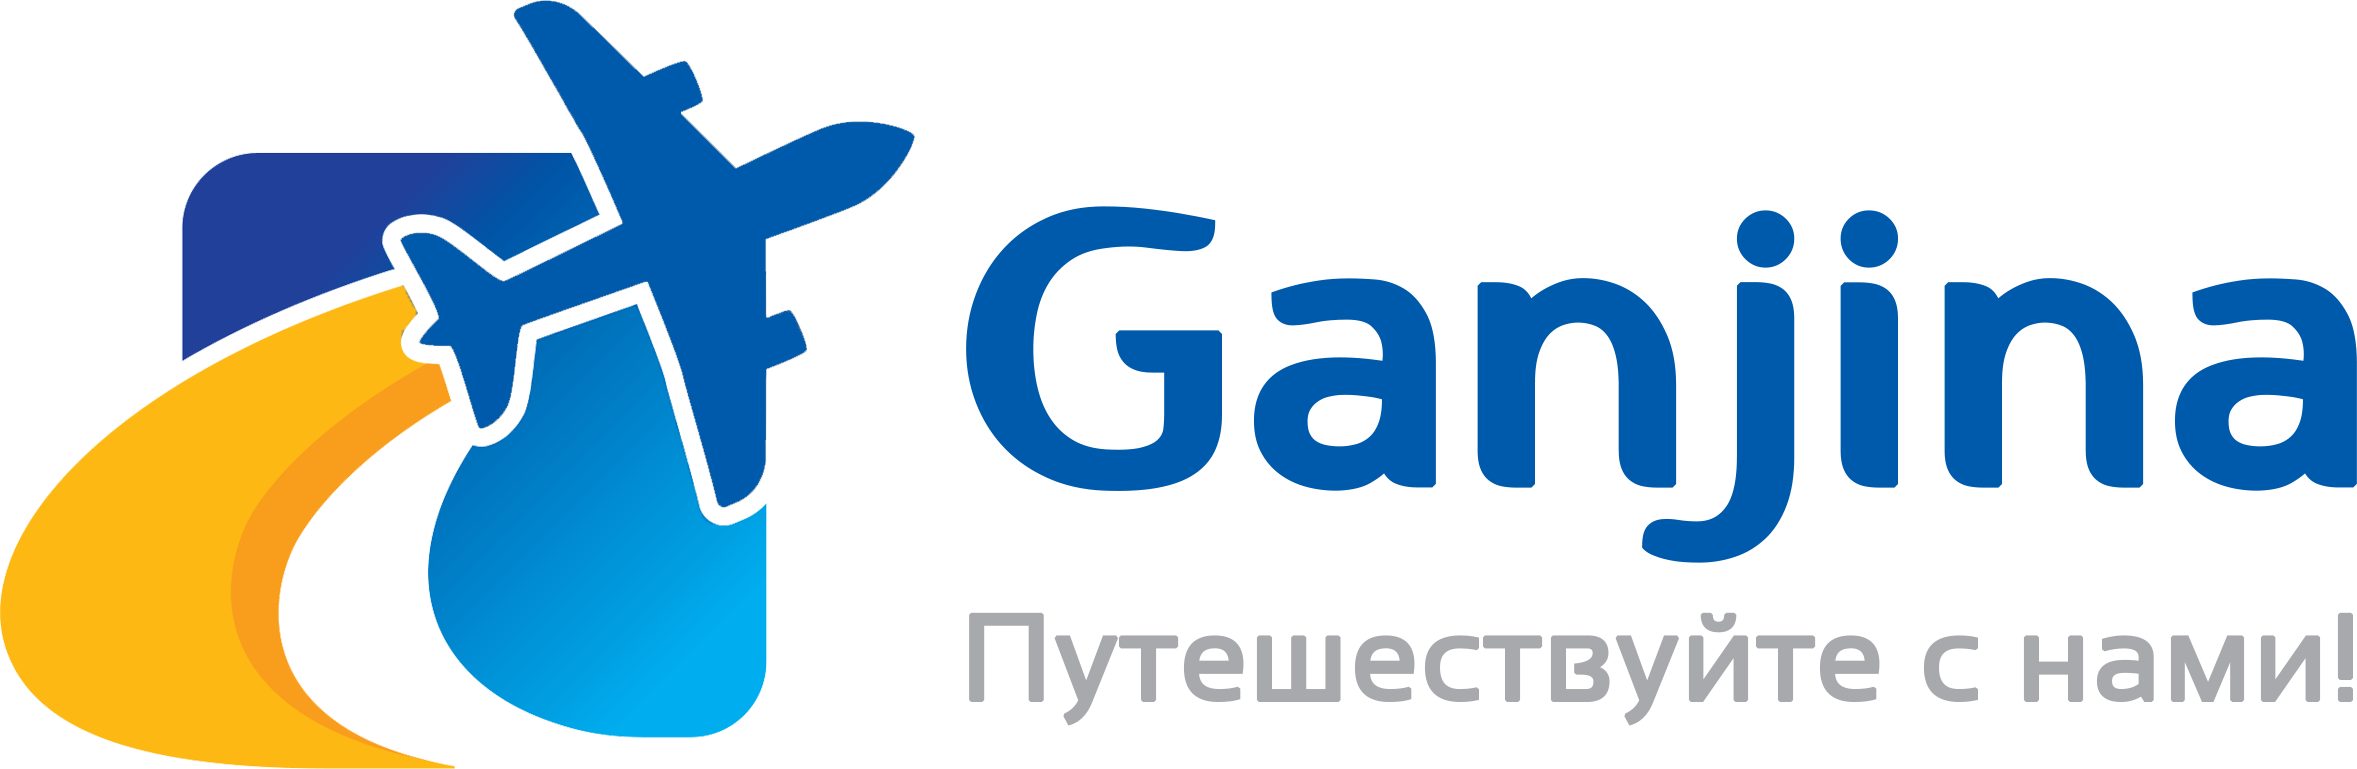 Logo with text blue